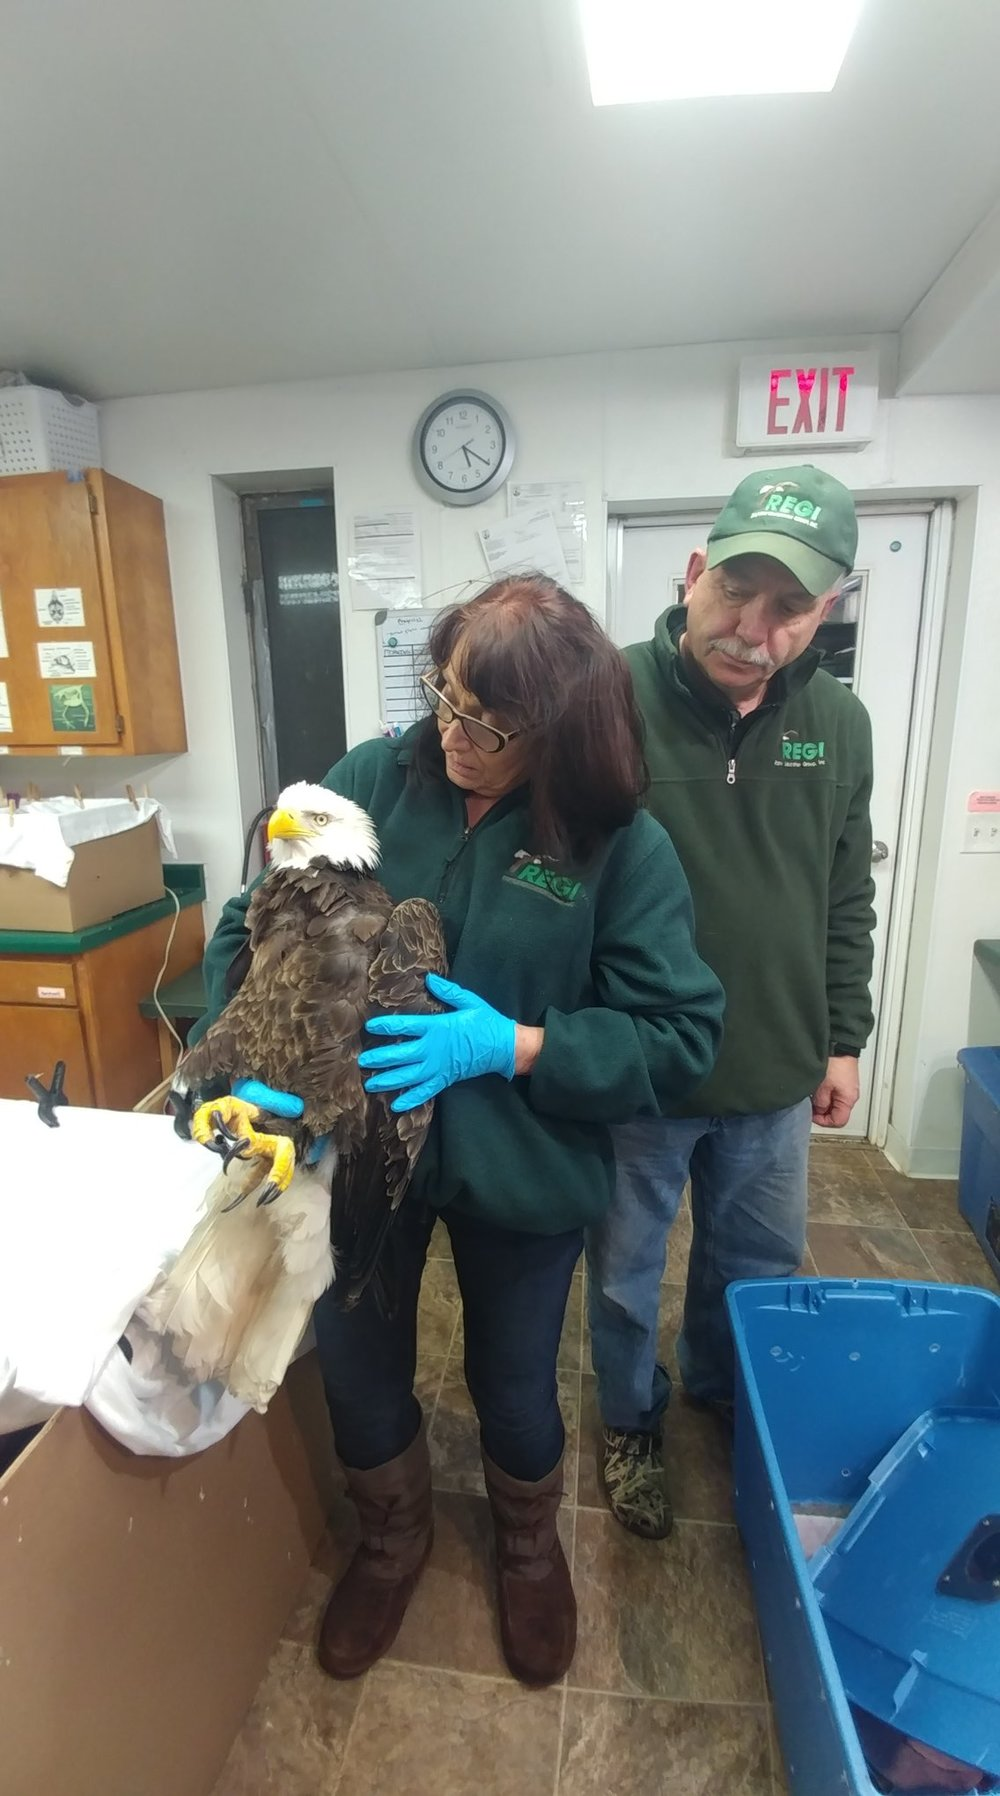 The eagle was weak and unable to fly. Alert landowners noticed him and called for help.